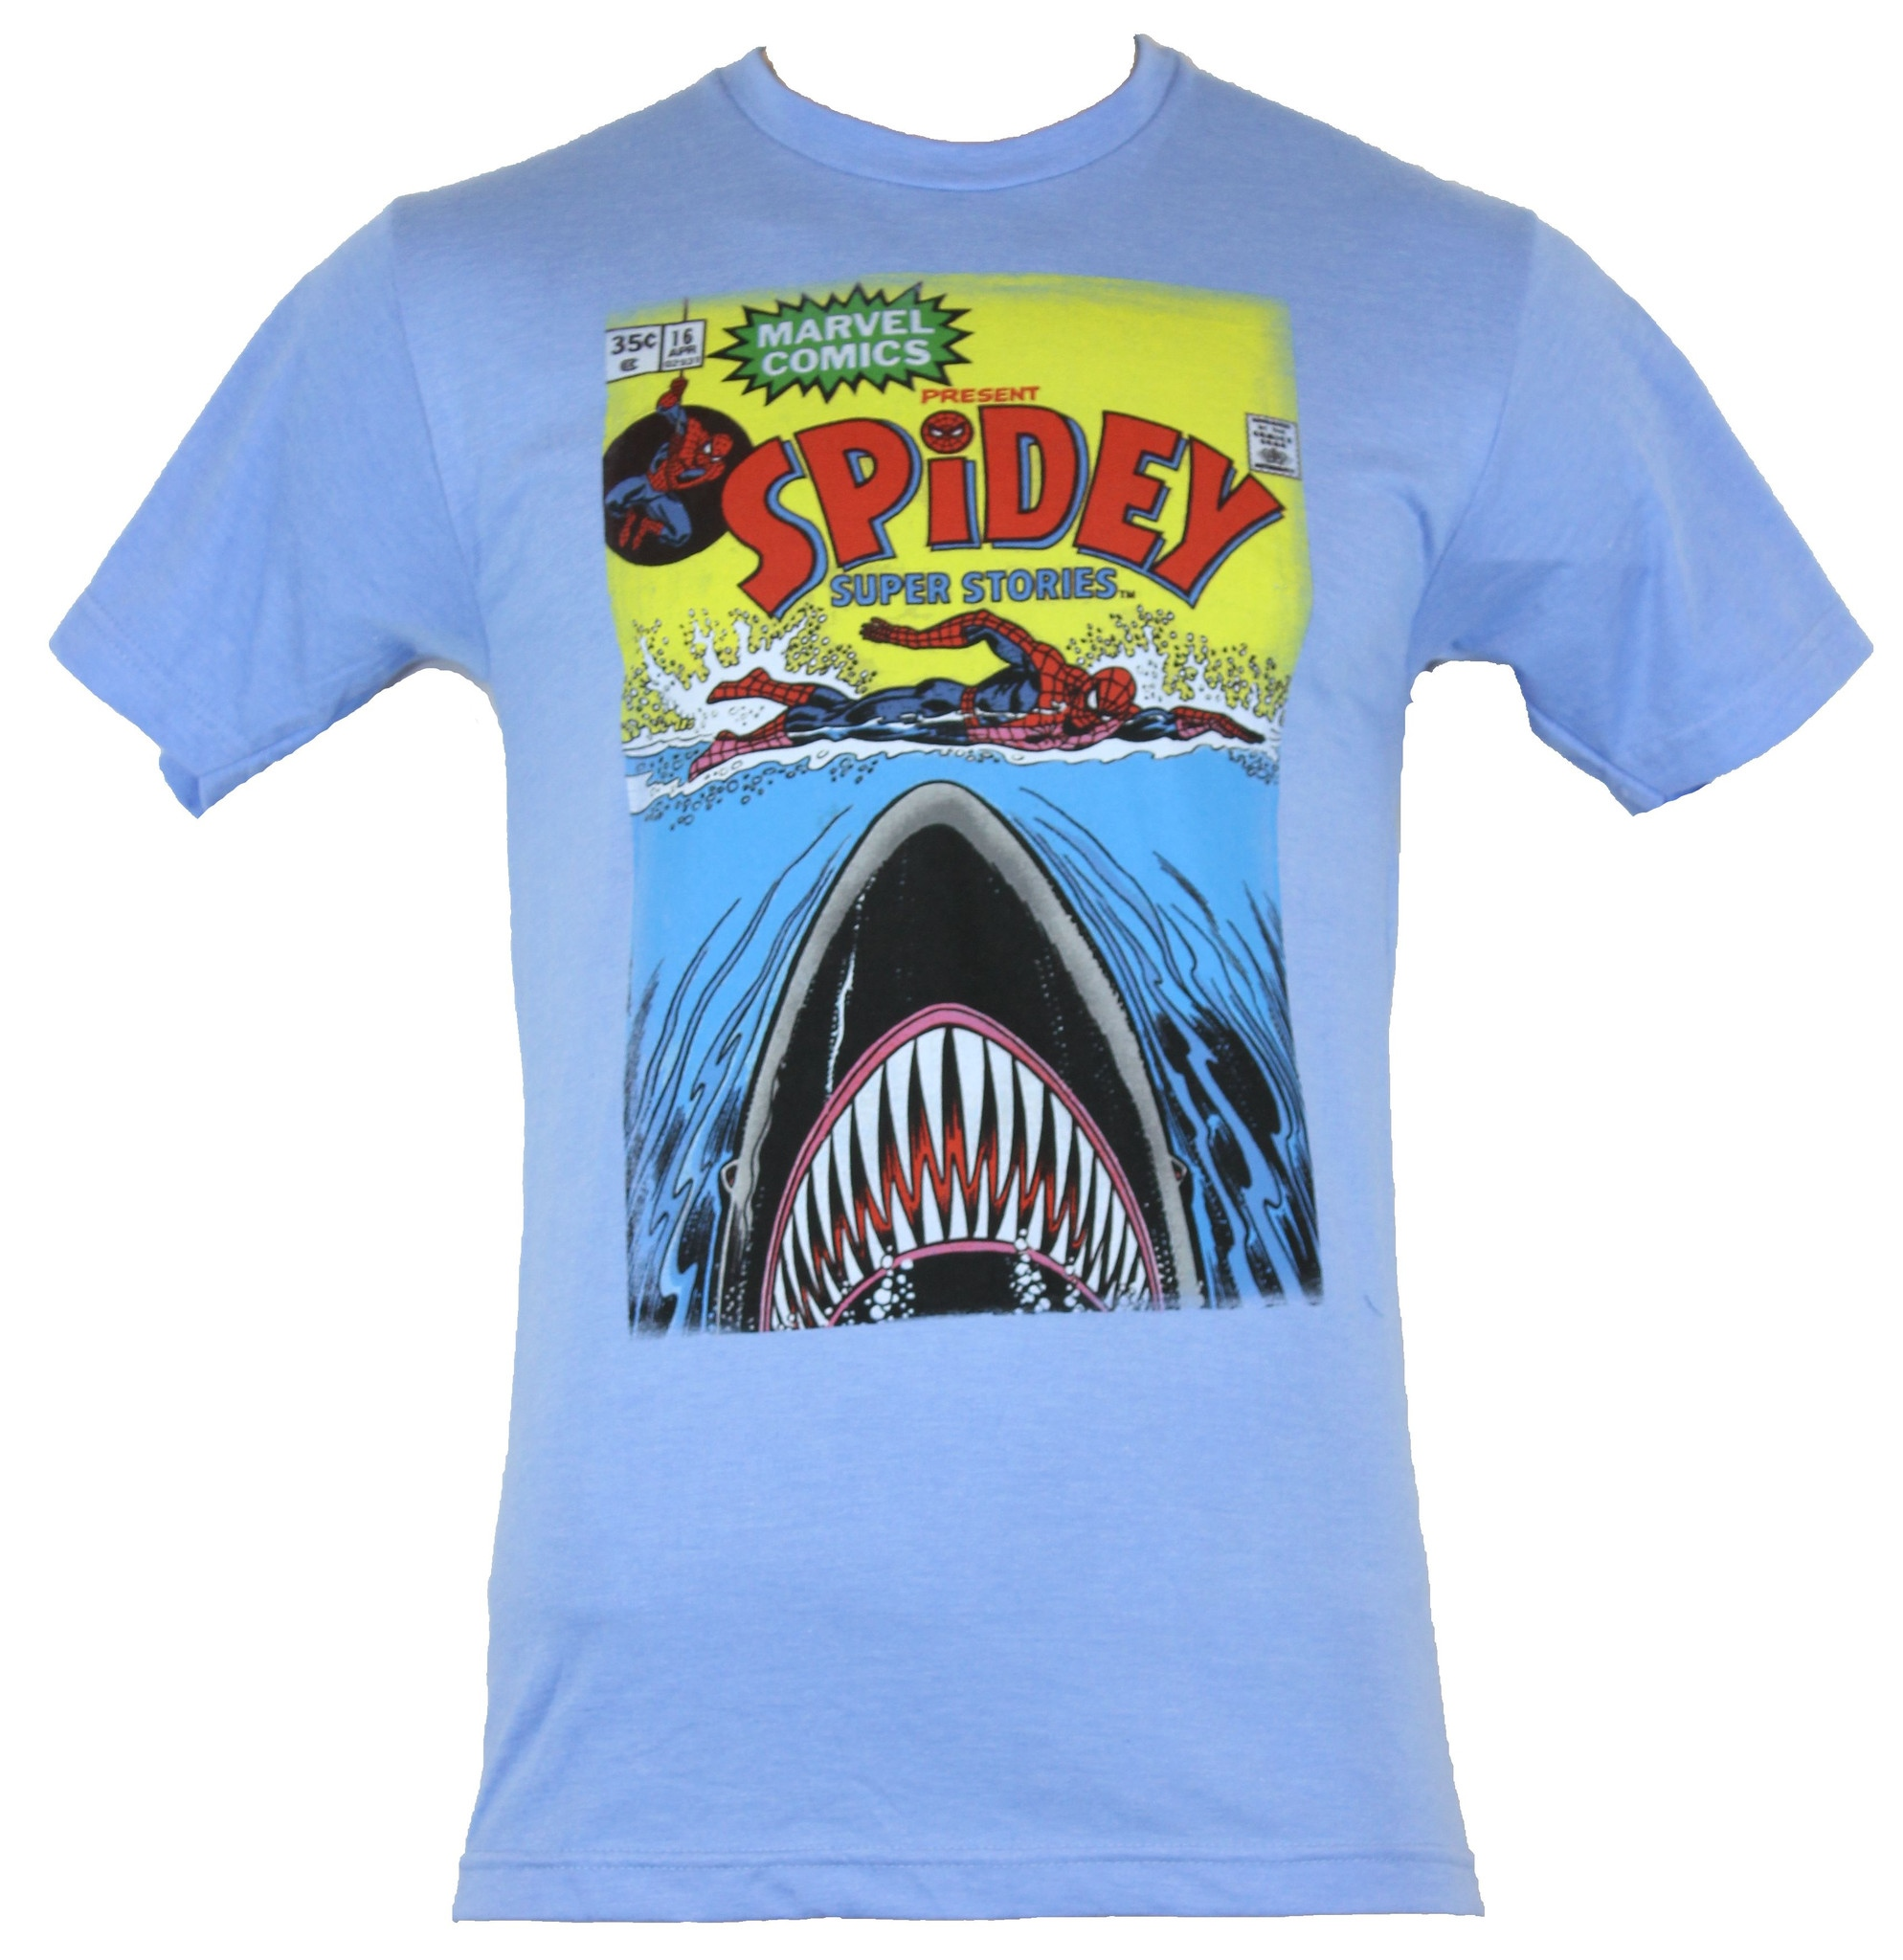 77df7a85 Details about Spider-Man (Marvel Comics) Mens T-Shirt - Spidery Super  Stories Shark Cover